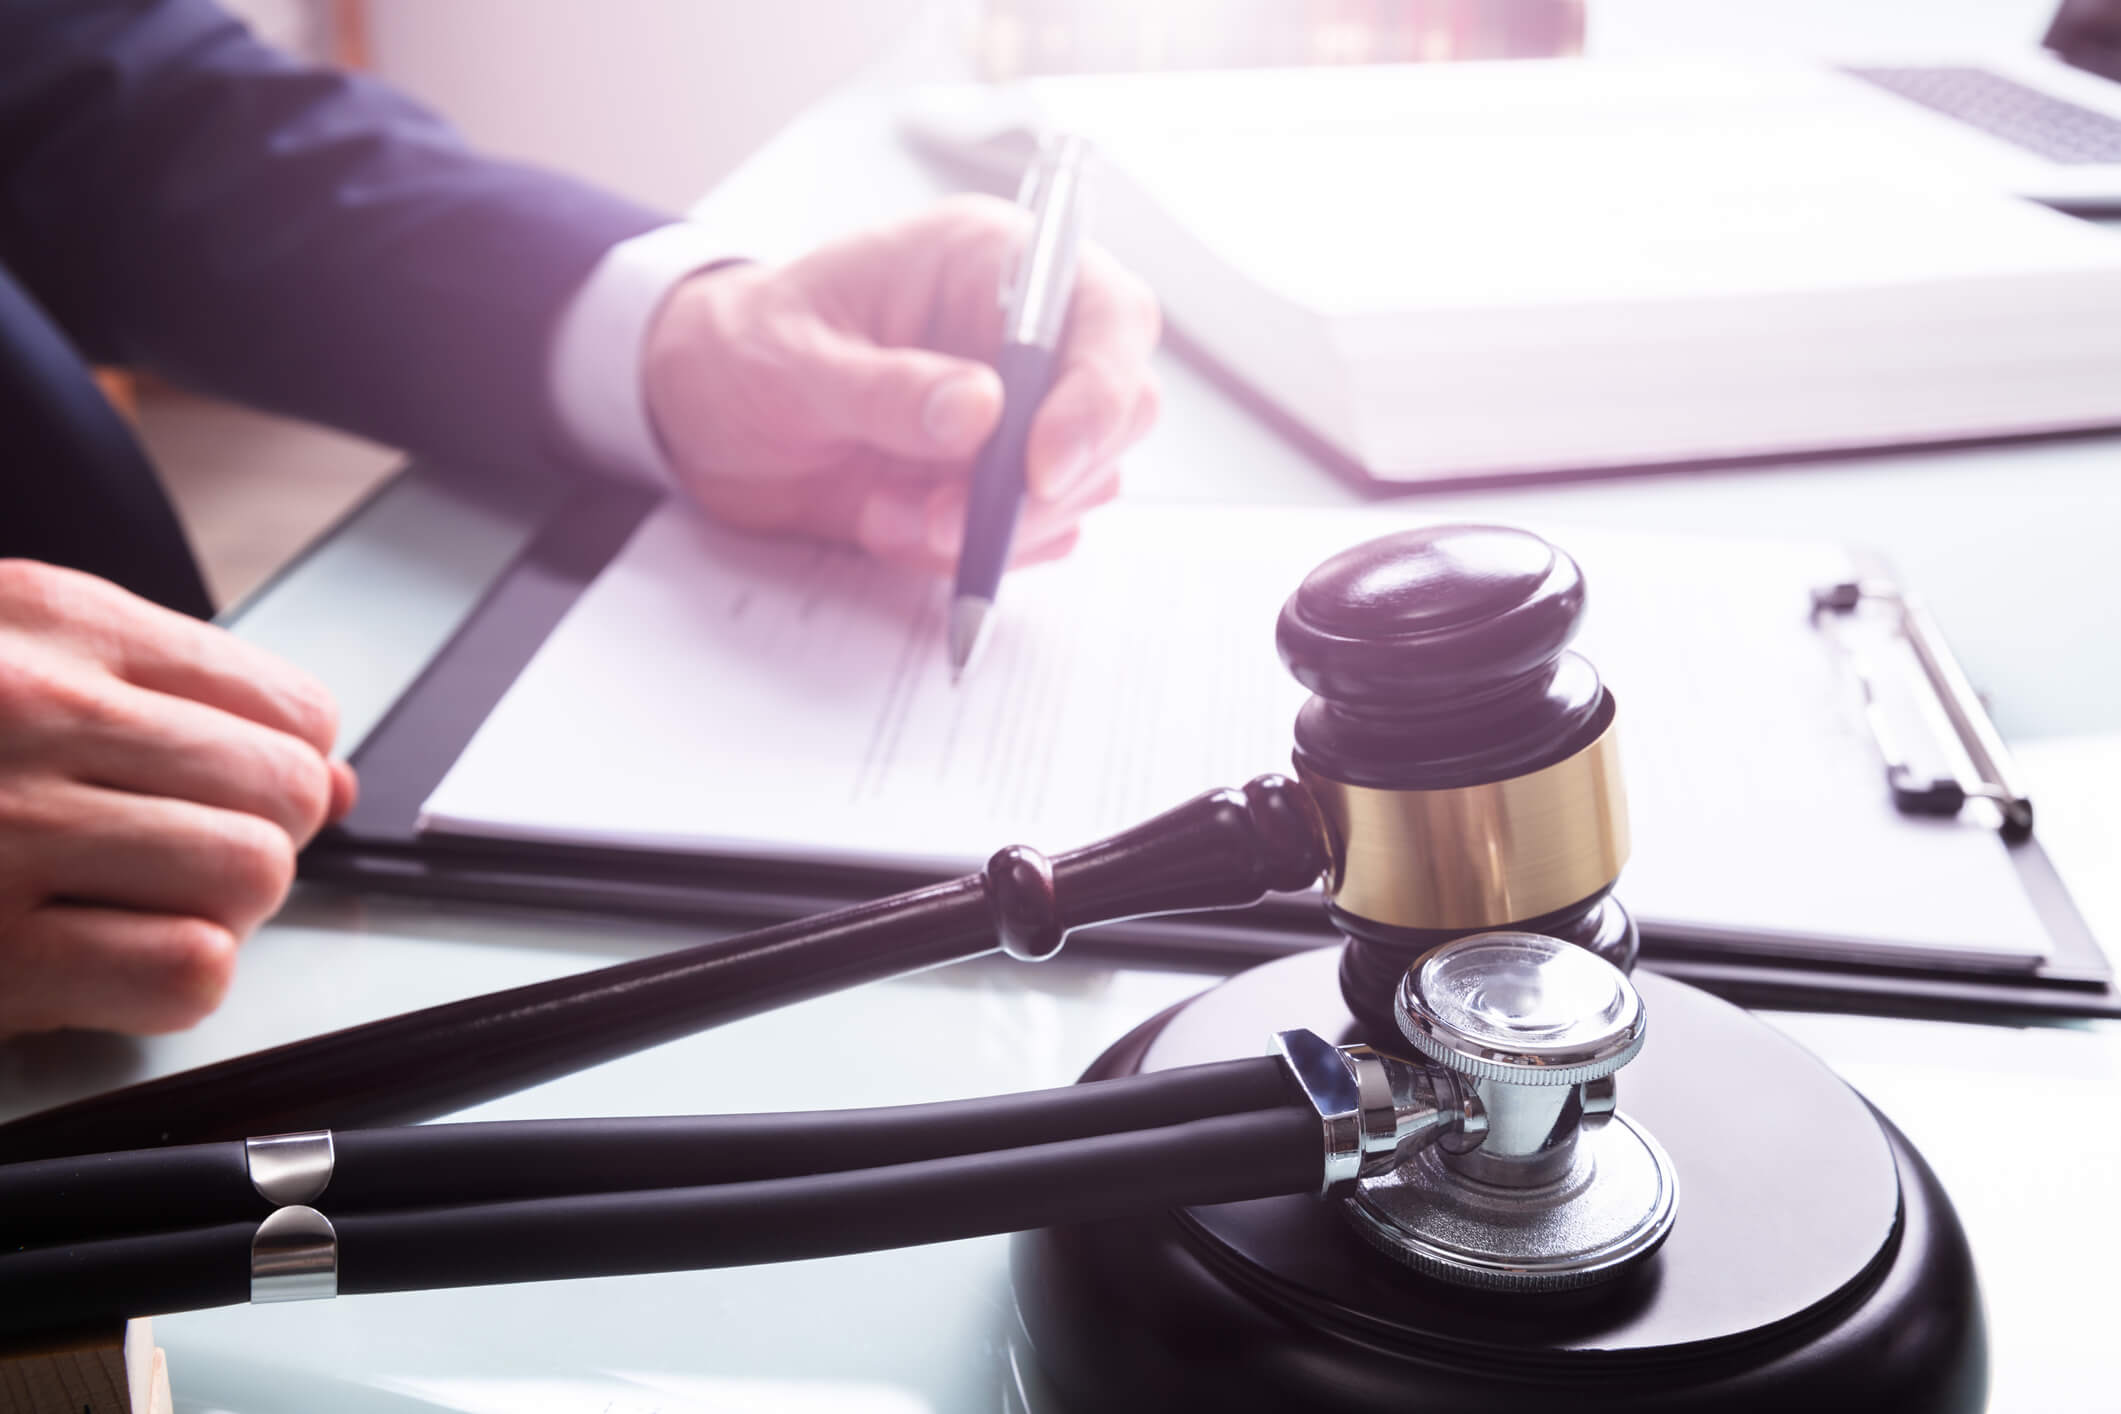 Nagel Rice, LLP discusses the discovery process in medical malpractice cases.